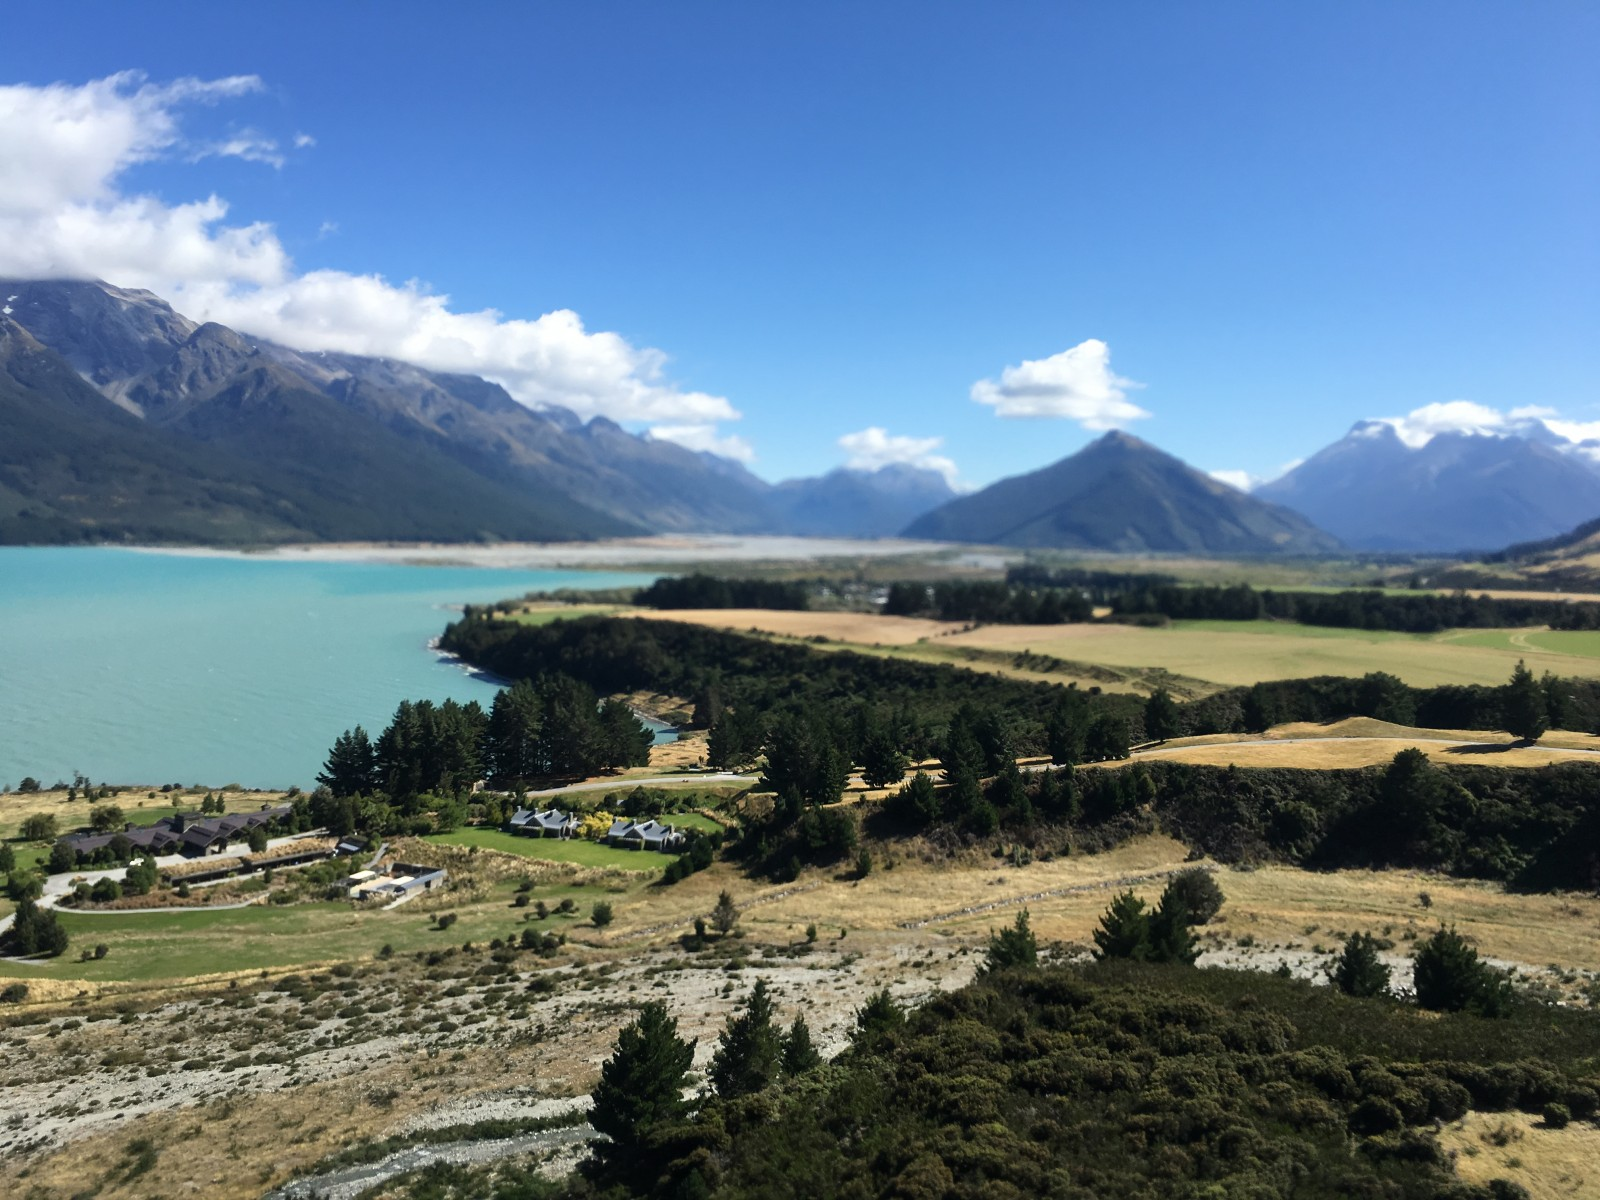 The view of Glenorchy from lift off